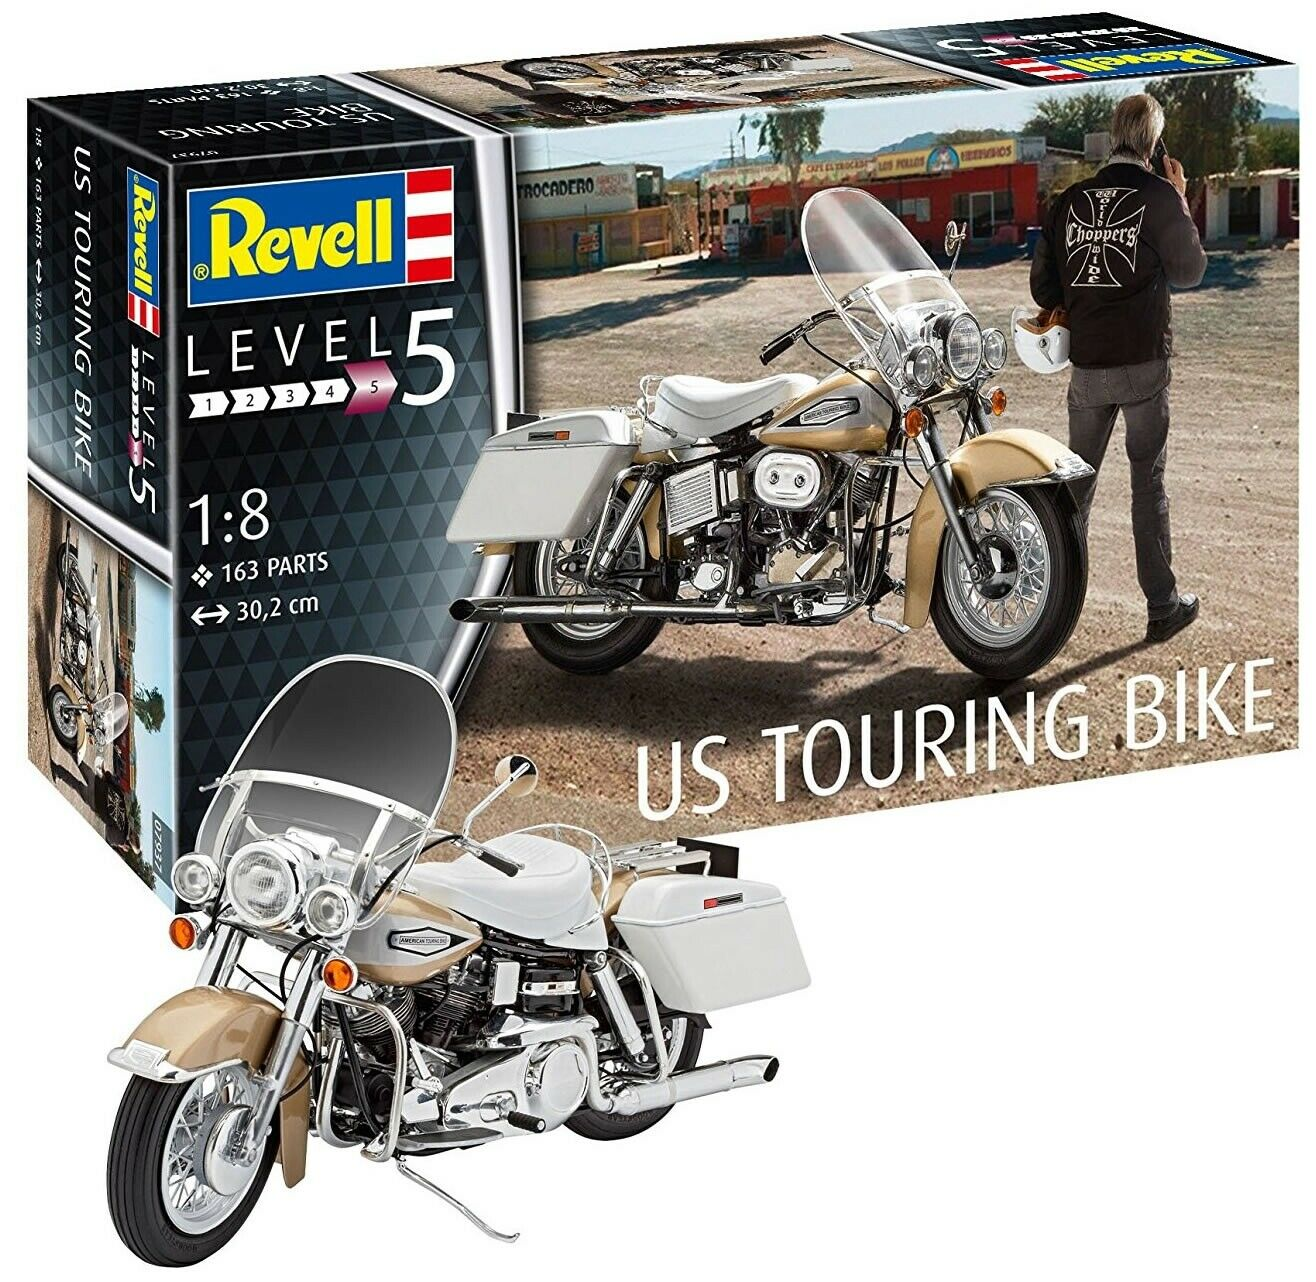 Revell 1 8 US Touring Bike